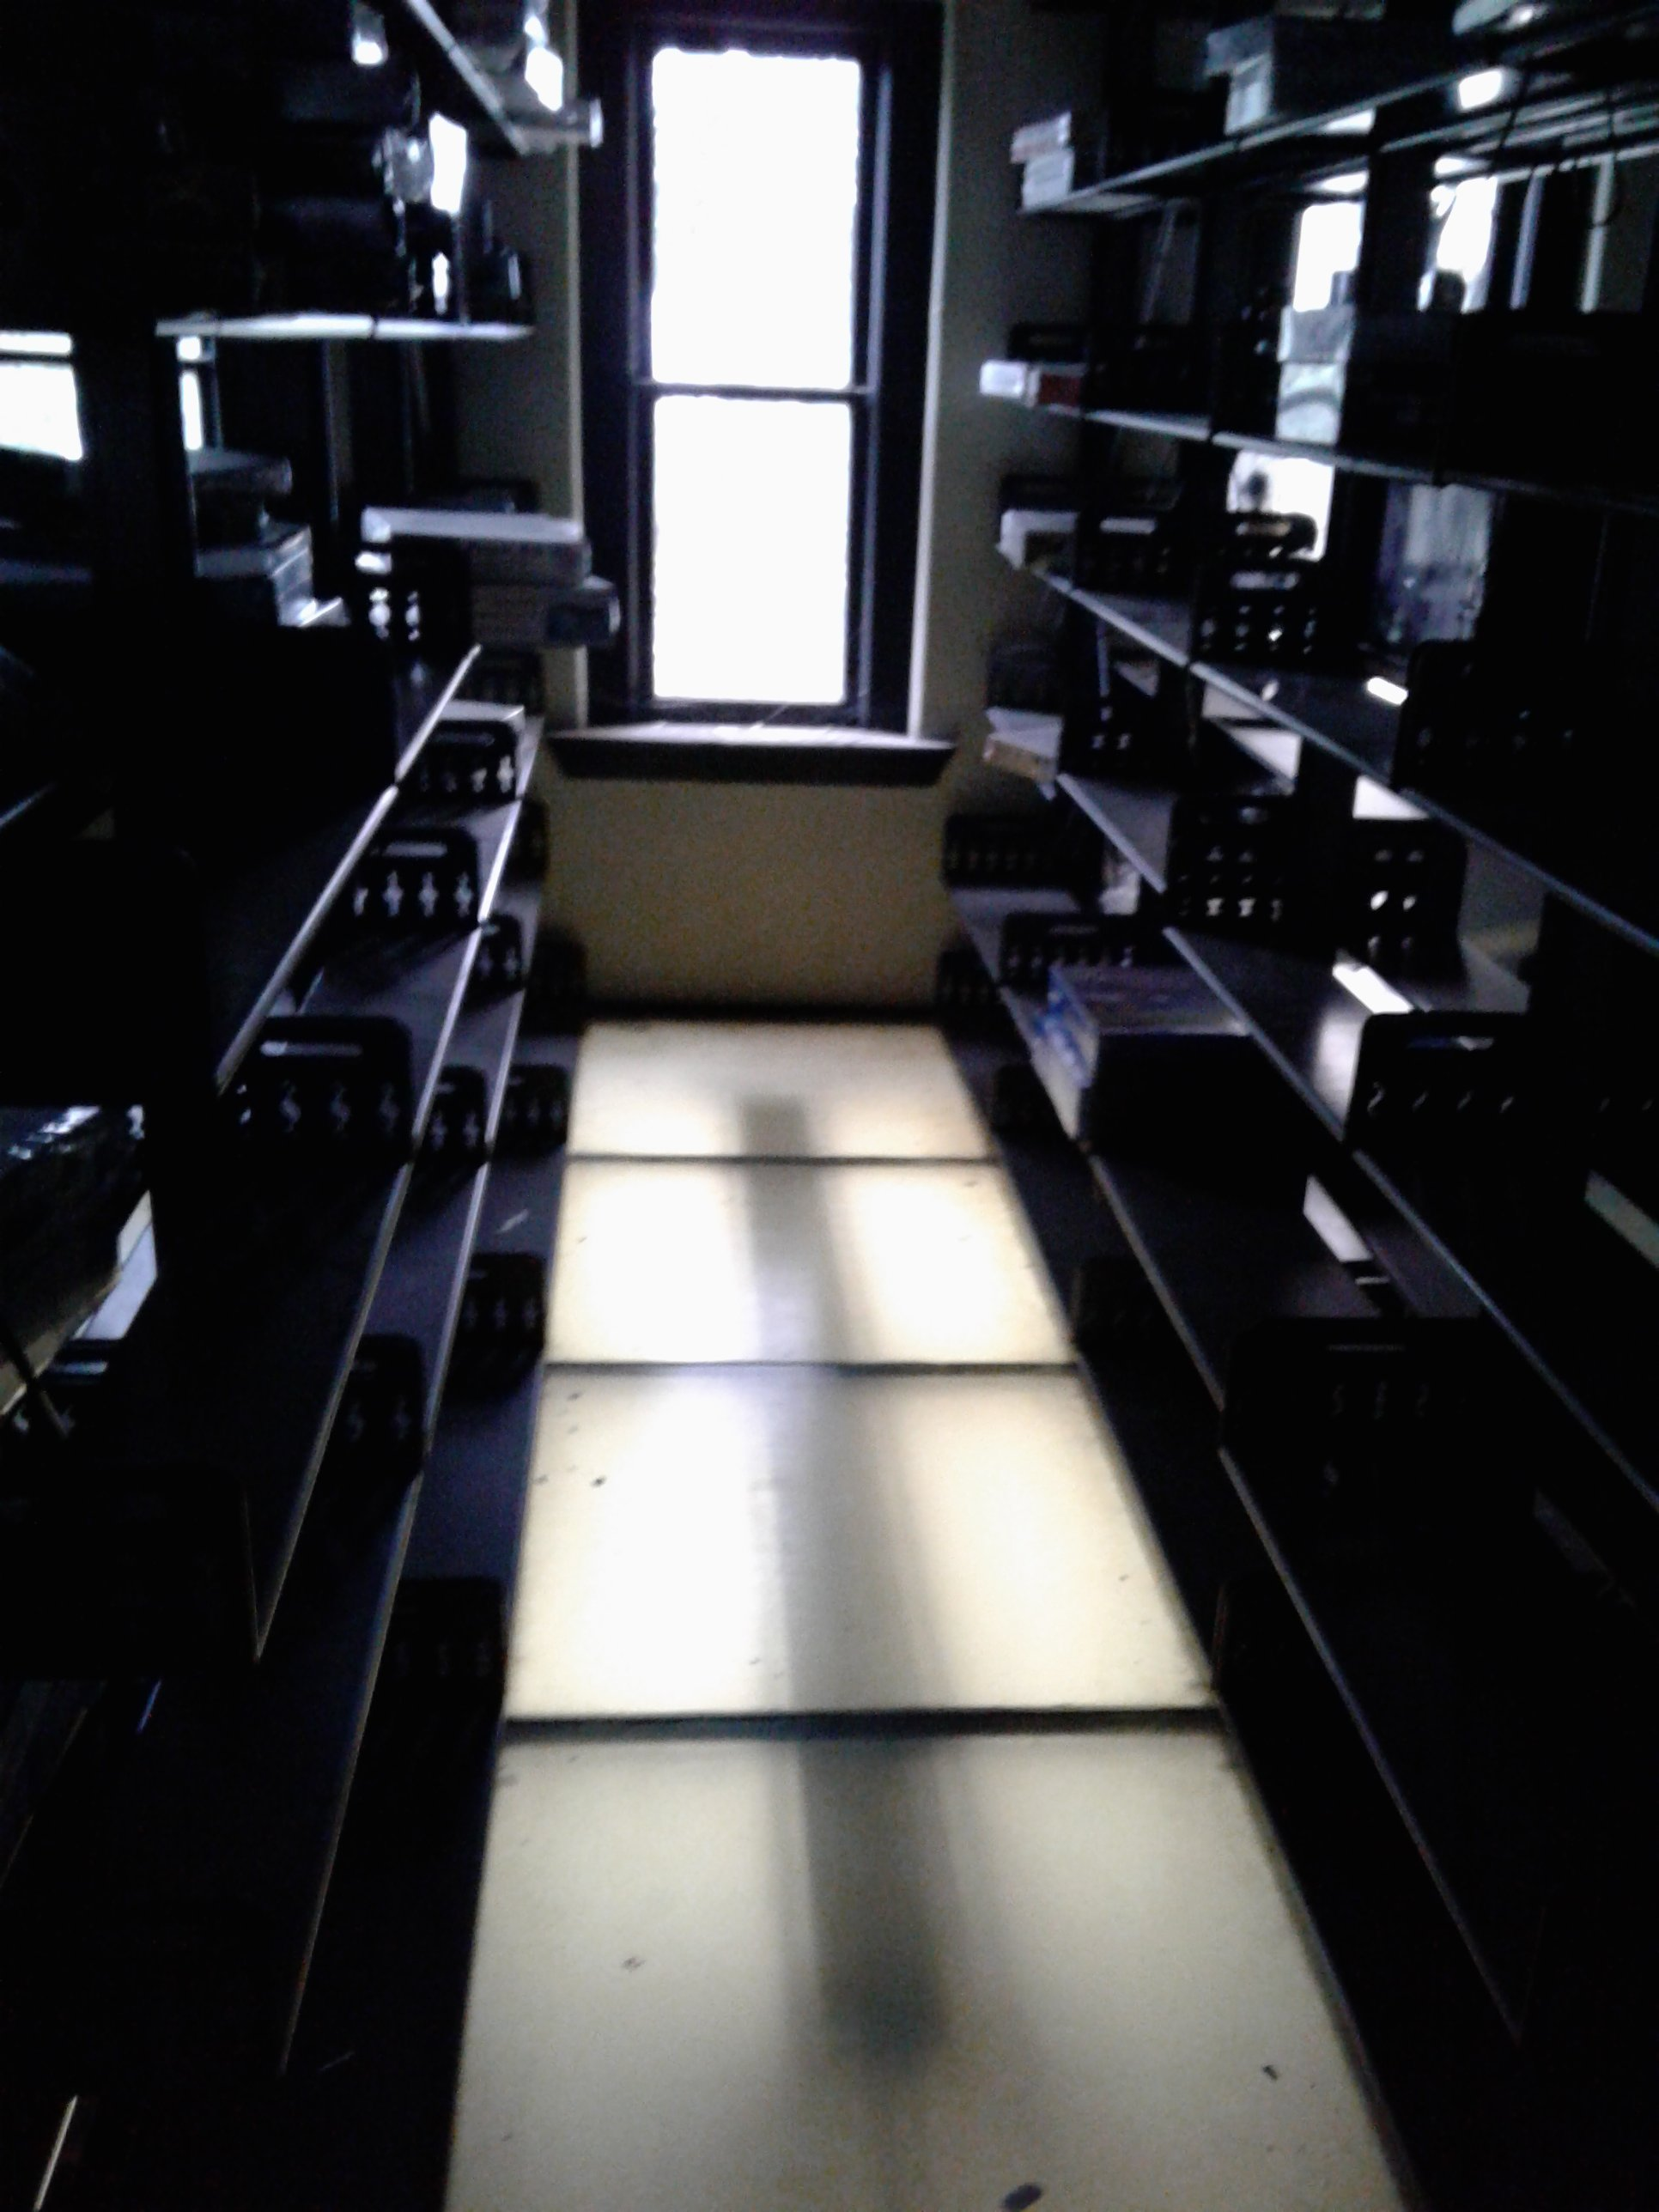 One row of 3-story Library stack with glass floor lighted by ceiling light on floor below in Historic Jones Memorial Library.